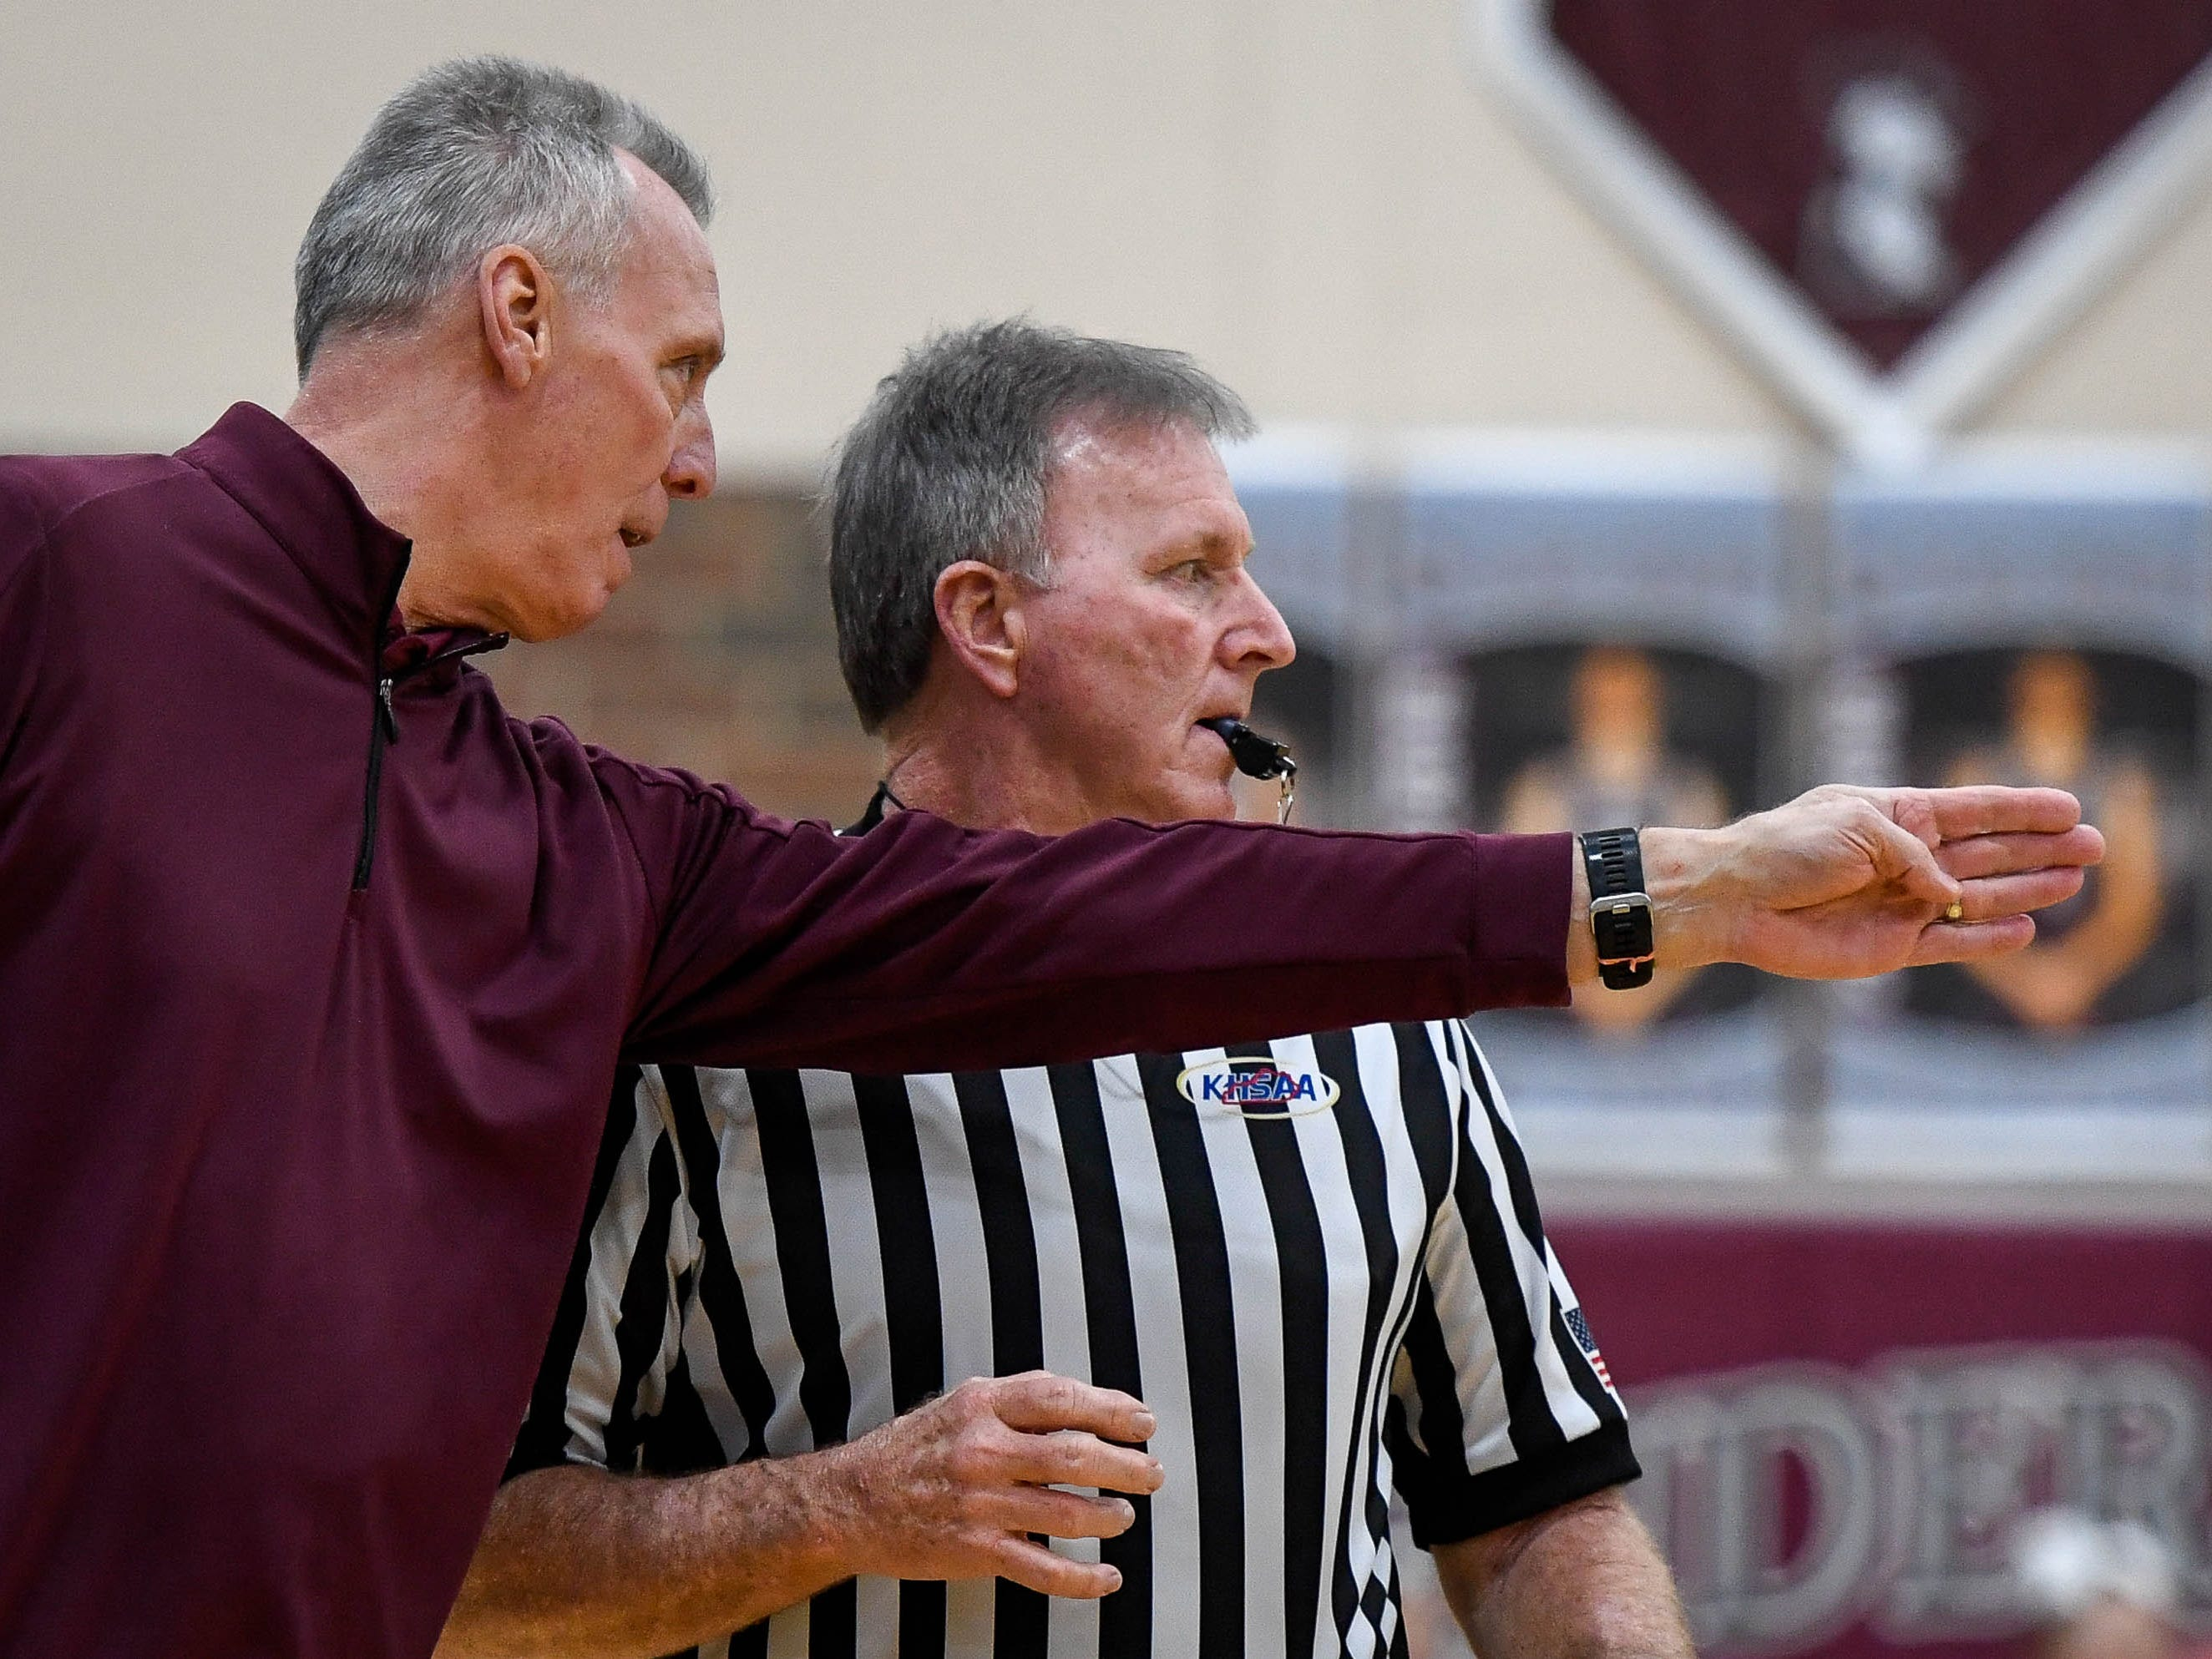 Henderson County Head Coach Jeff Haile bends the referee's ear as the Henderson County Lady Colonels play 6th district rival the Webster County Lady Trojans at Henderson's Colonel Gym Tuesday, January 8, 2019.